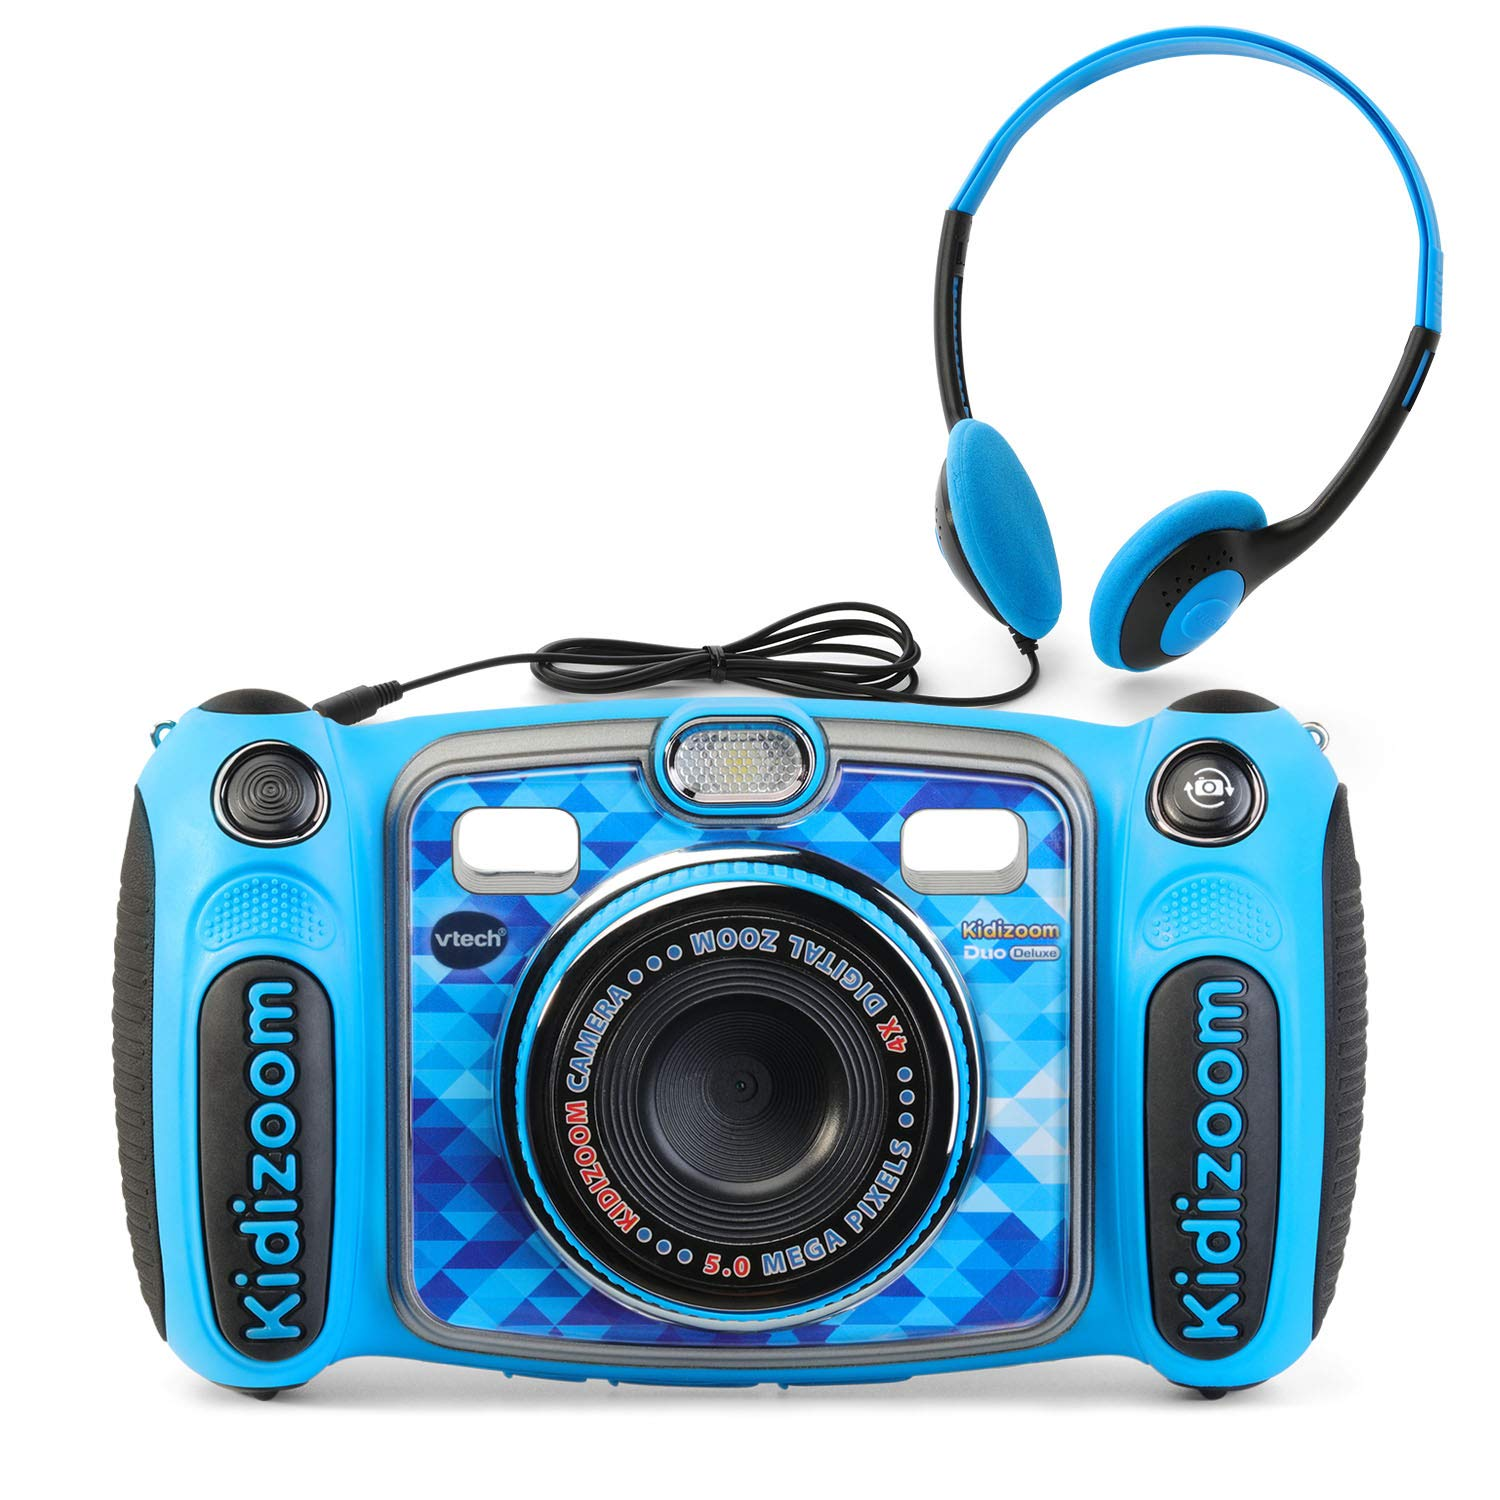 VTech Kidizoom Duo 5.0 Deluxe Digital Selfie Camera with MP3 Player & Headphones, Blue 80-507160